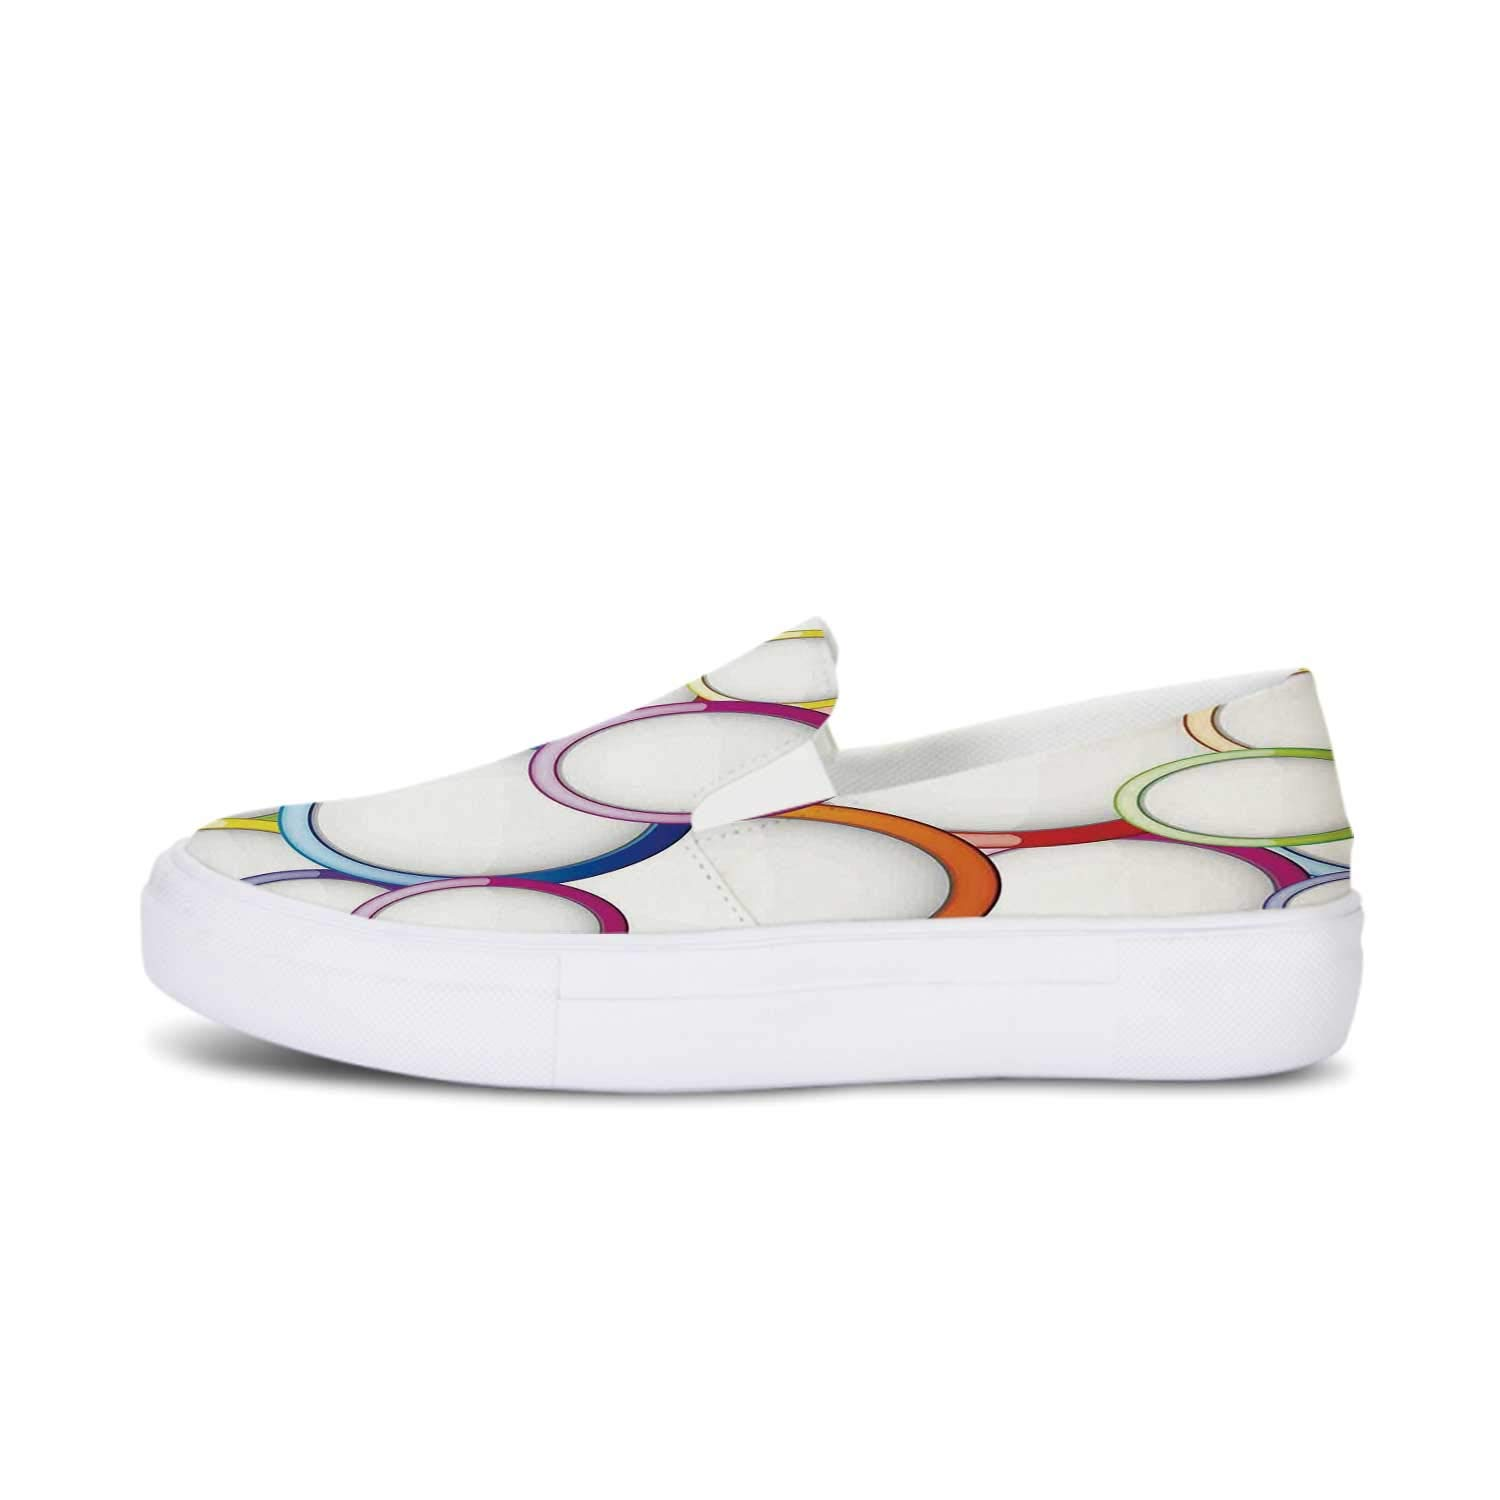 Ocean Decor Canvas Slip On Shoes,Tropical Sandy Beach at Summer Sunny Day Decorative for Women,US 5